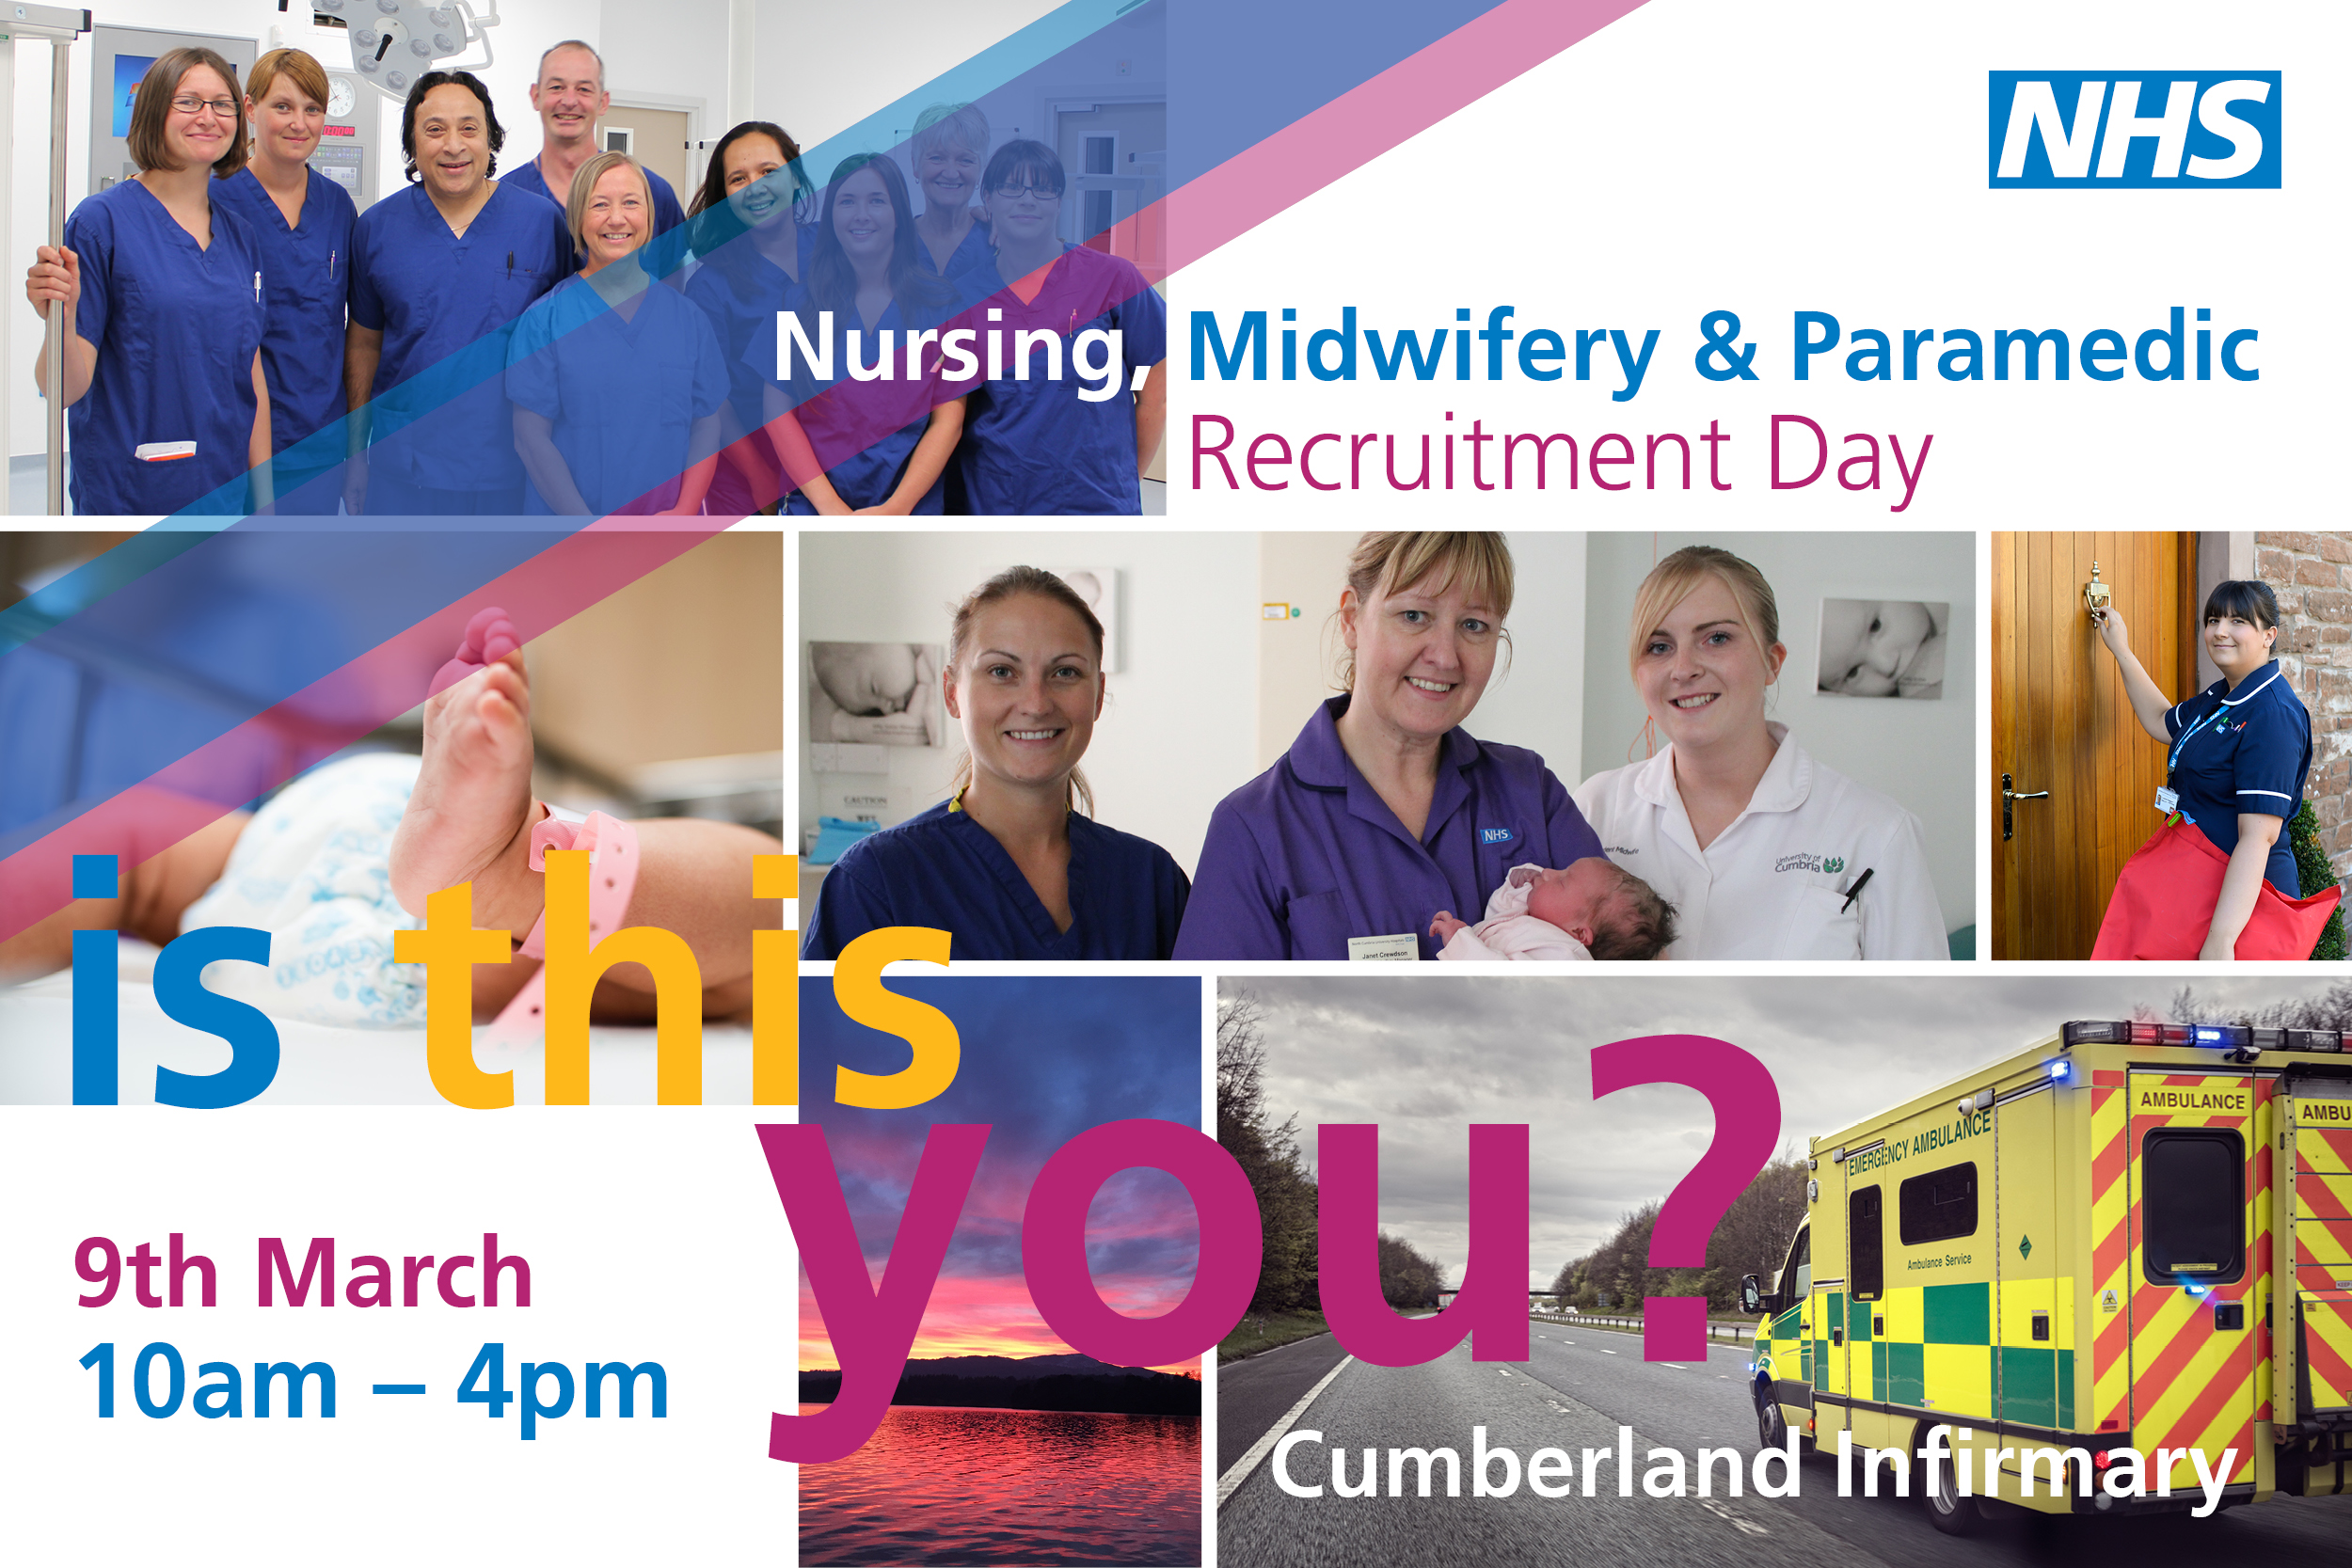 Recruitment day for current and future midwifes, nurses and paramedics